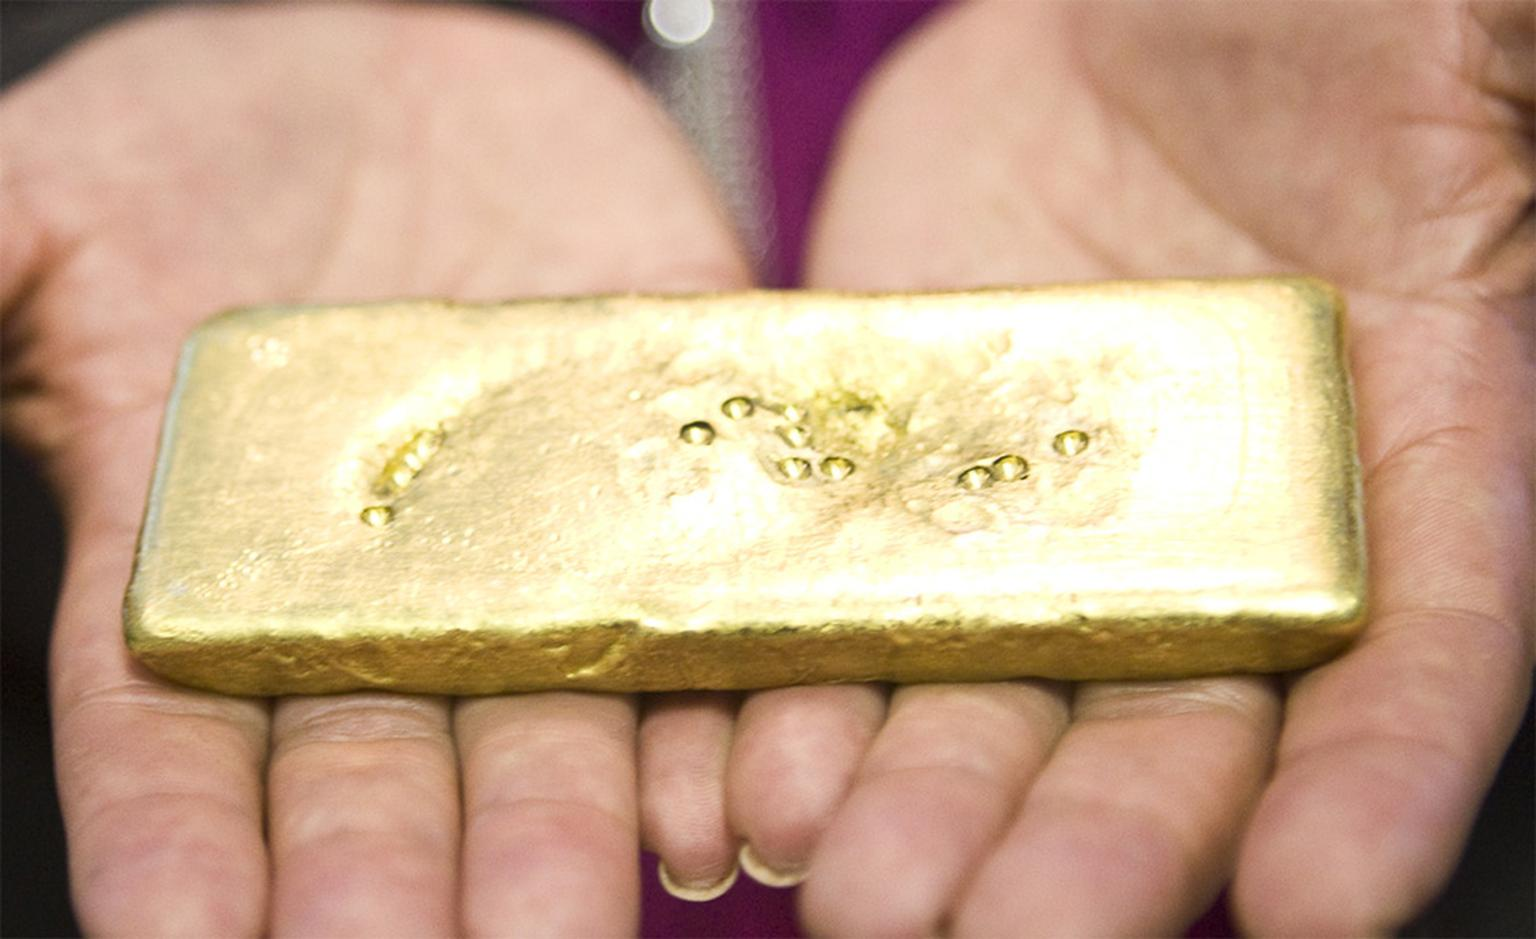 The world's first ingot of Fairtrade gold arrives in London on Valentine's Day 2011